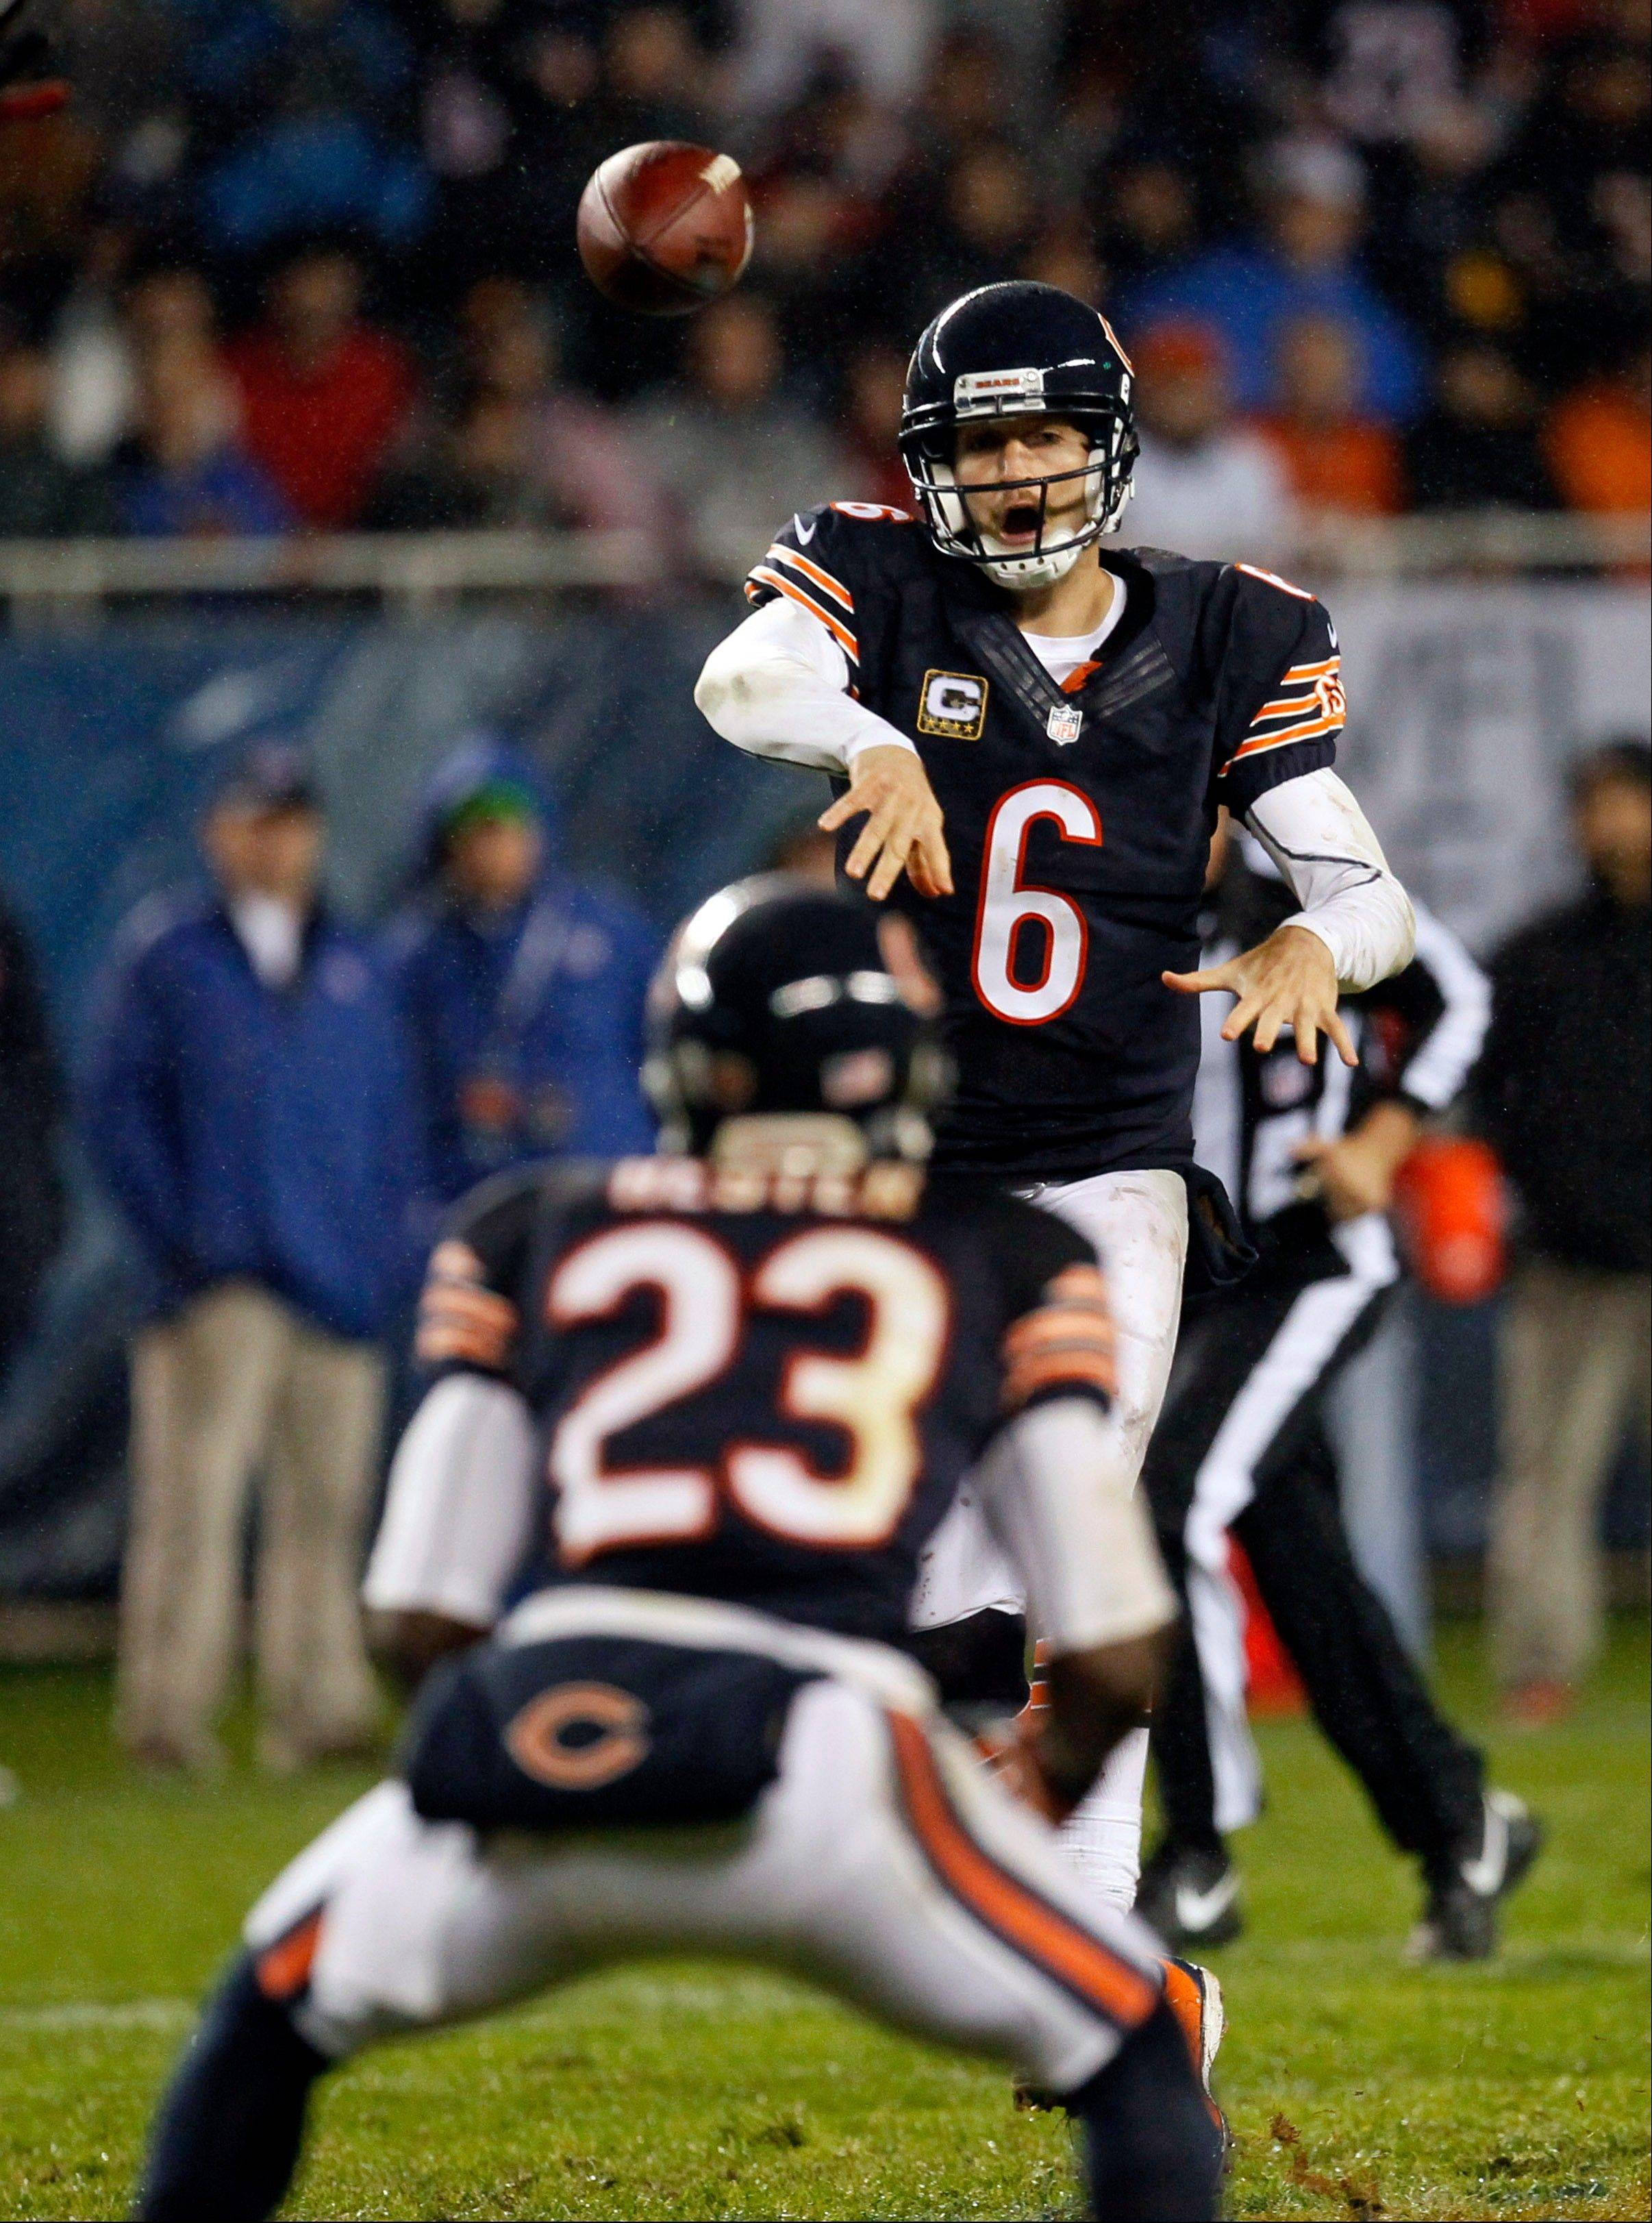 Smith vague about Cutler, but QB likely won't play